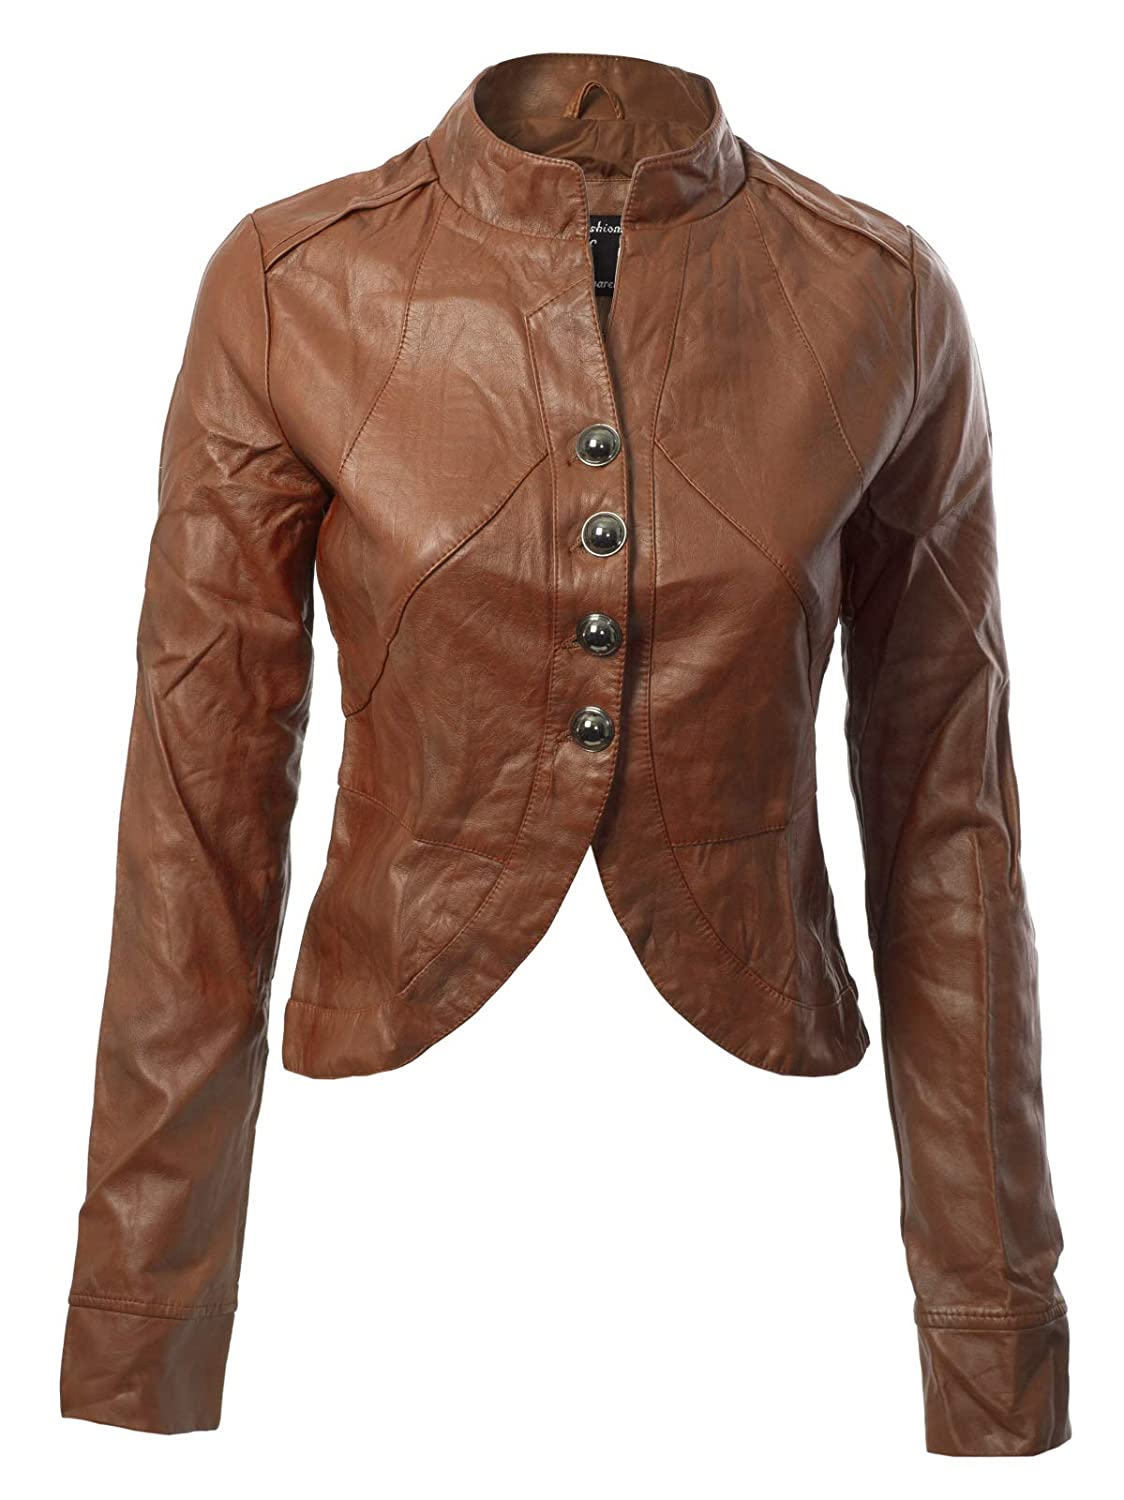 Instar Mode Women's Faux Leather Zip Up Moto Biker Jacket